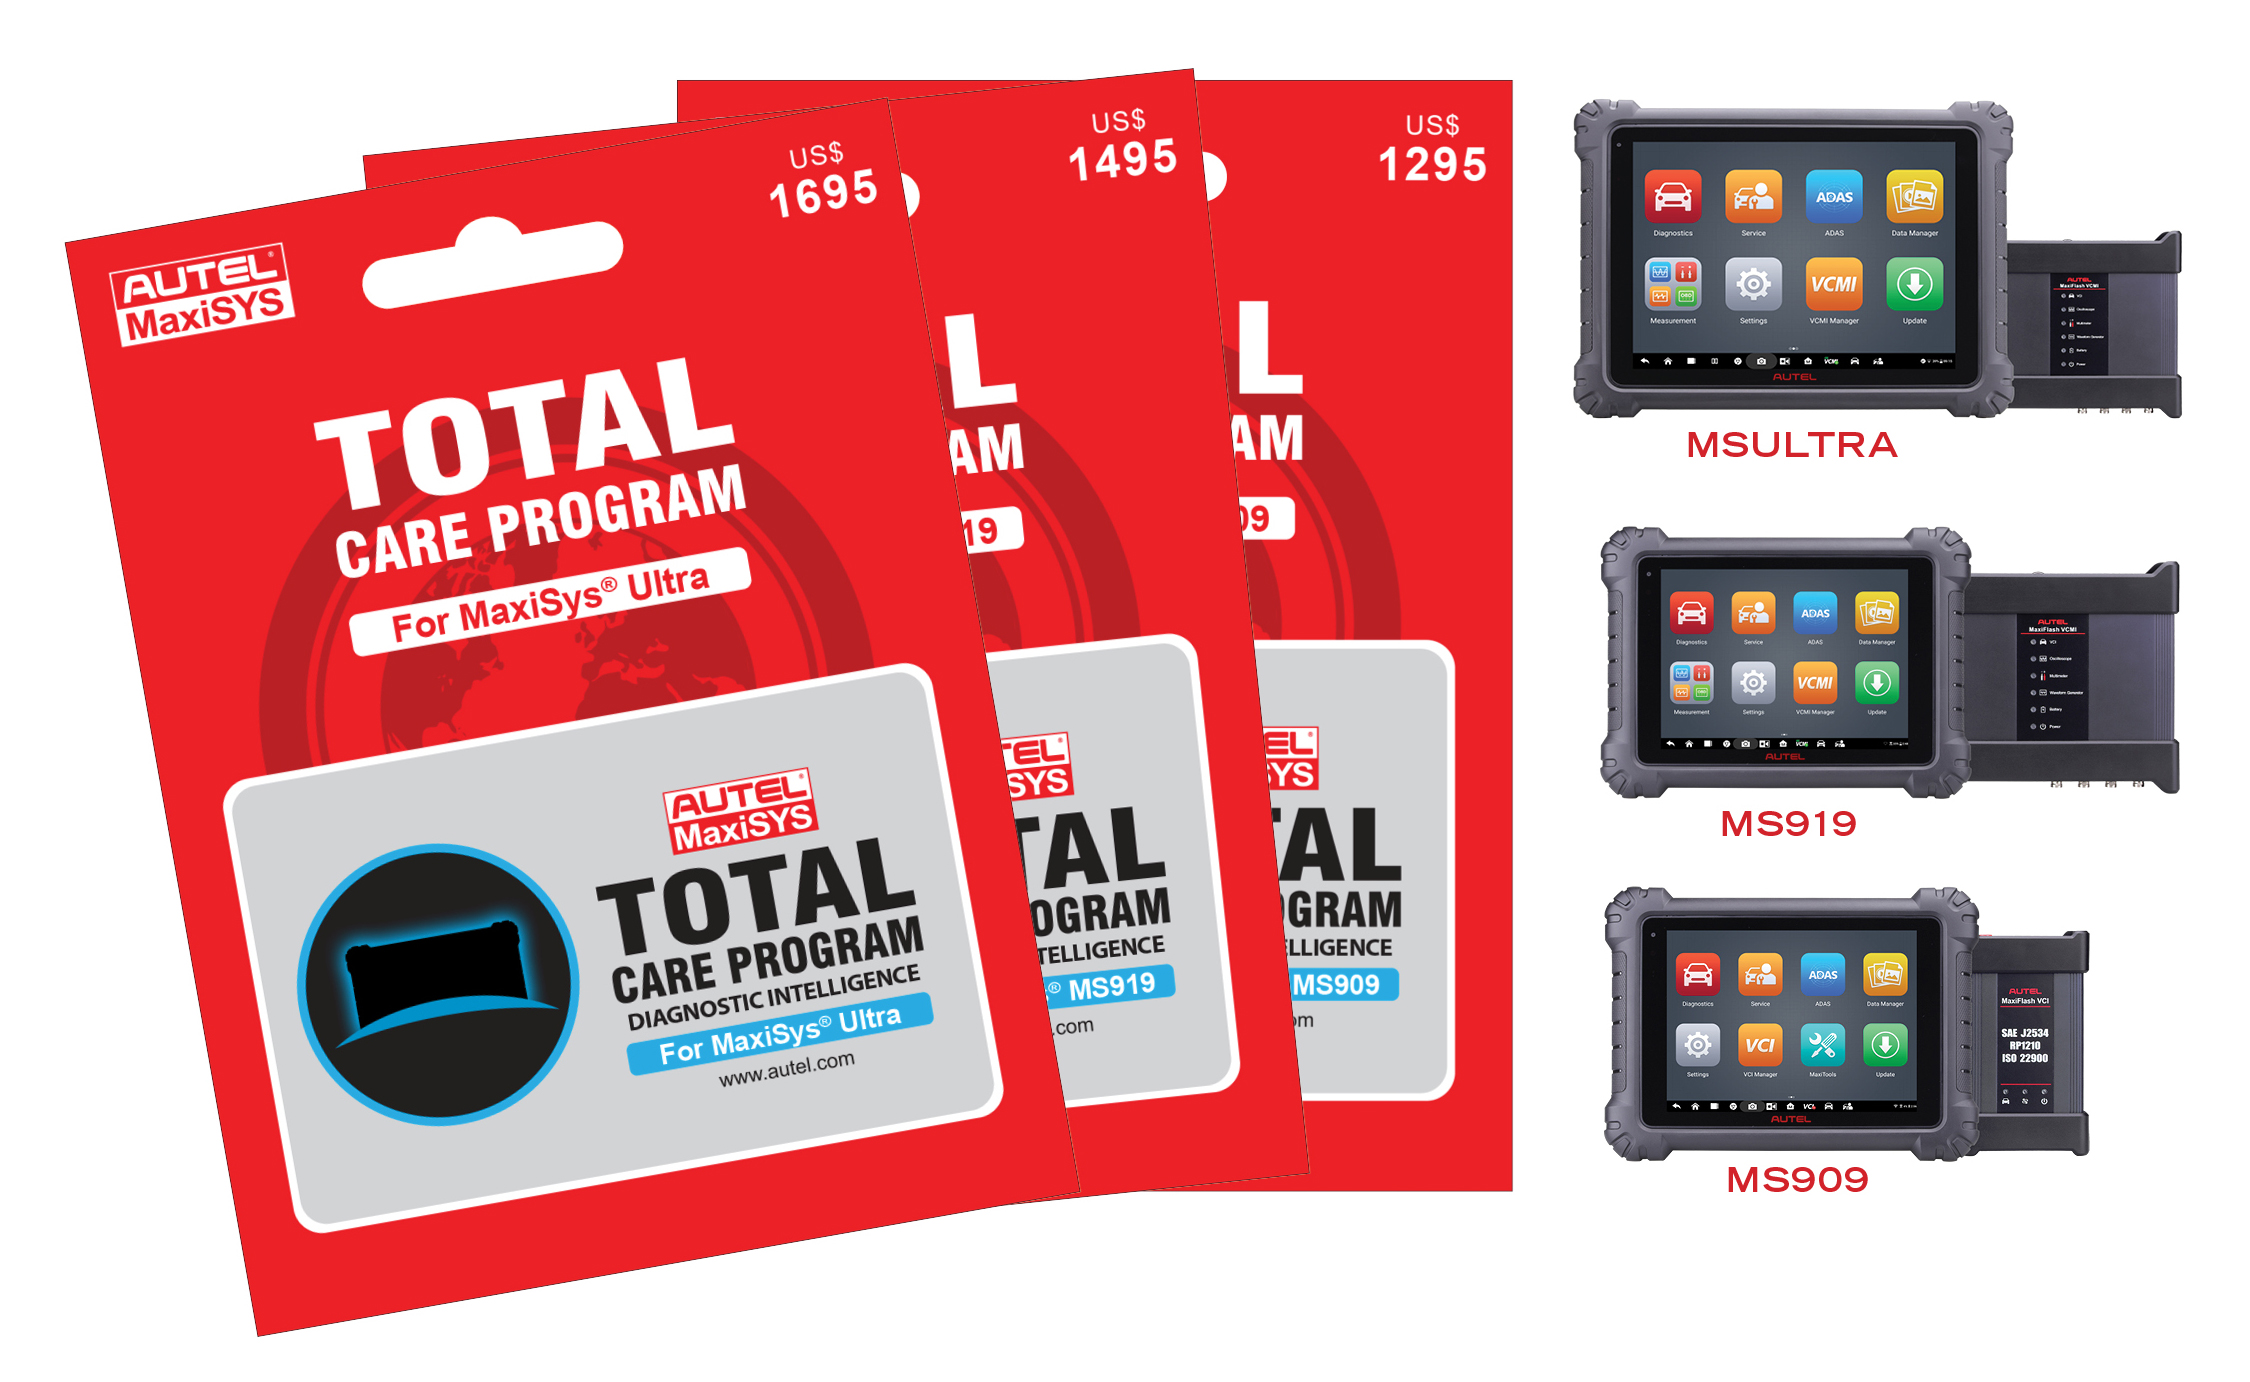 Autel Releases Subscription Cards for its Latest Tablets | 2021-02-05 |  Auto Service Professional